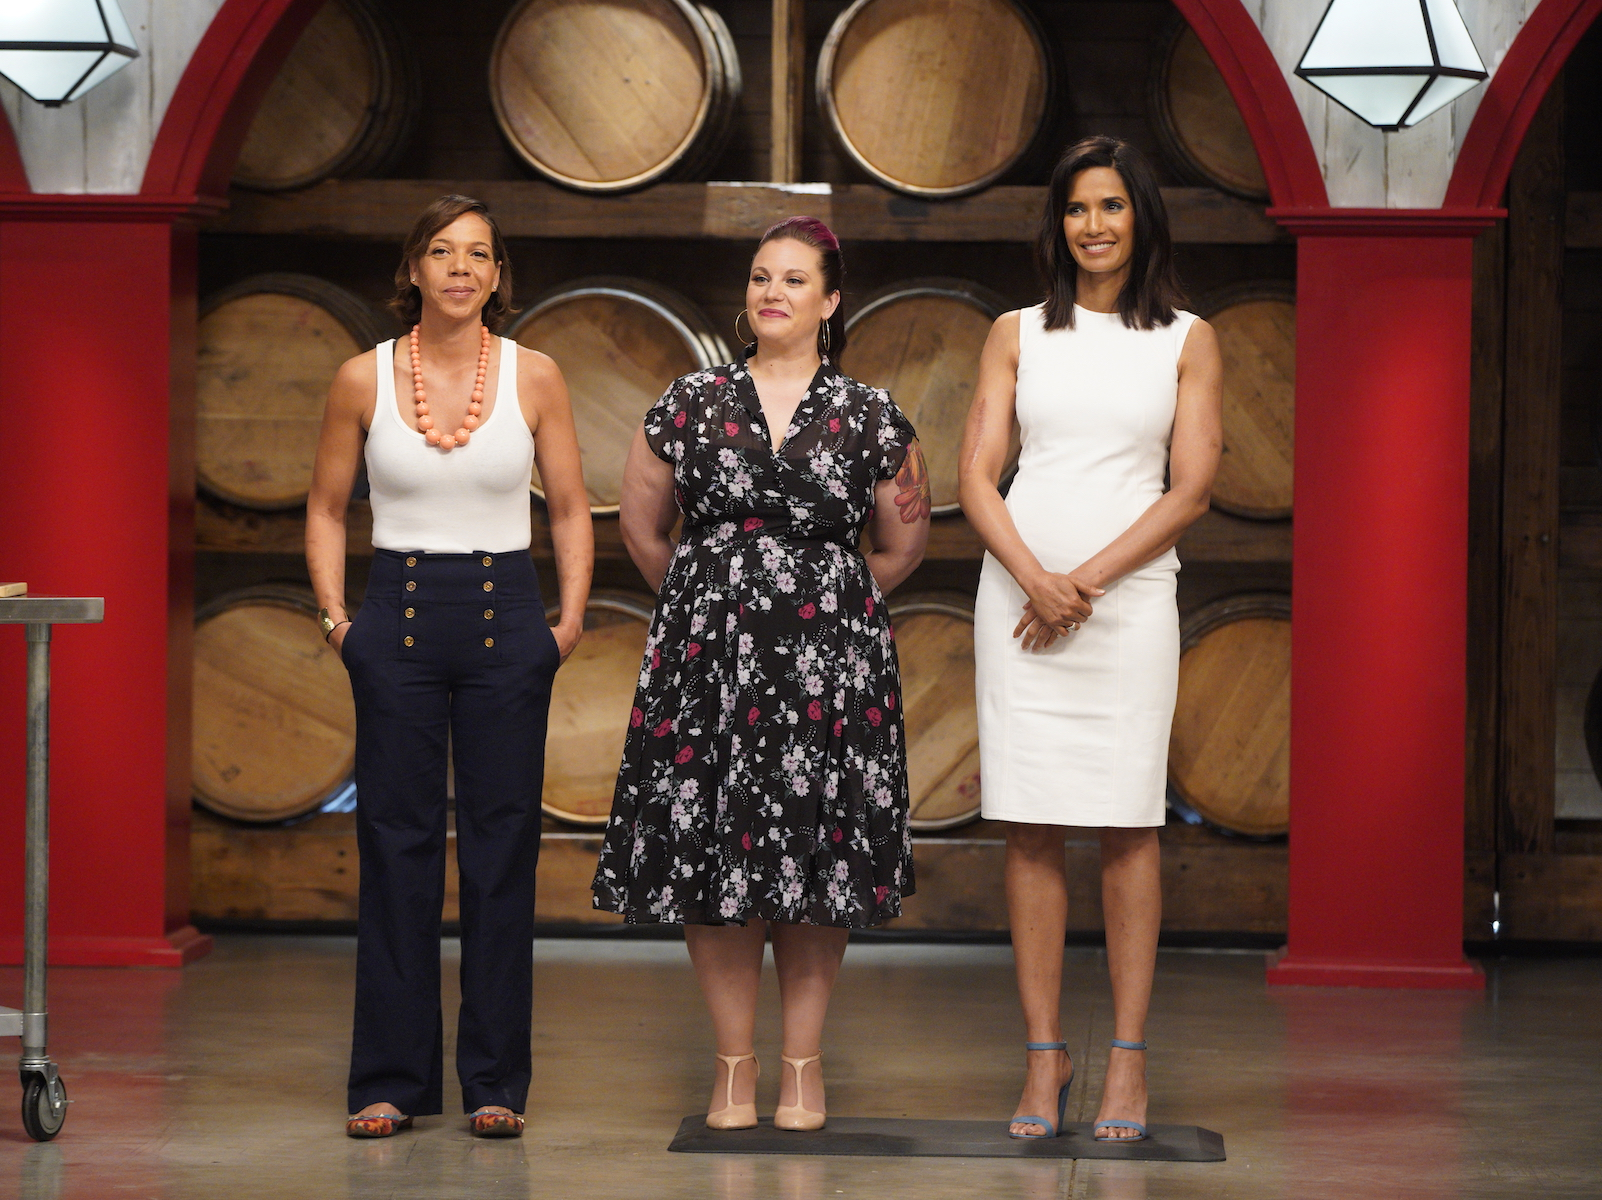 What to Expect on Episode 4 of 'Top Chef' Season 16 in Kentucky